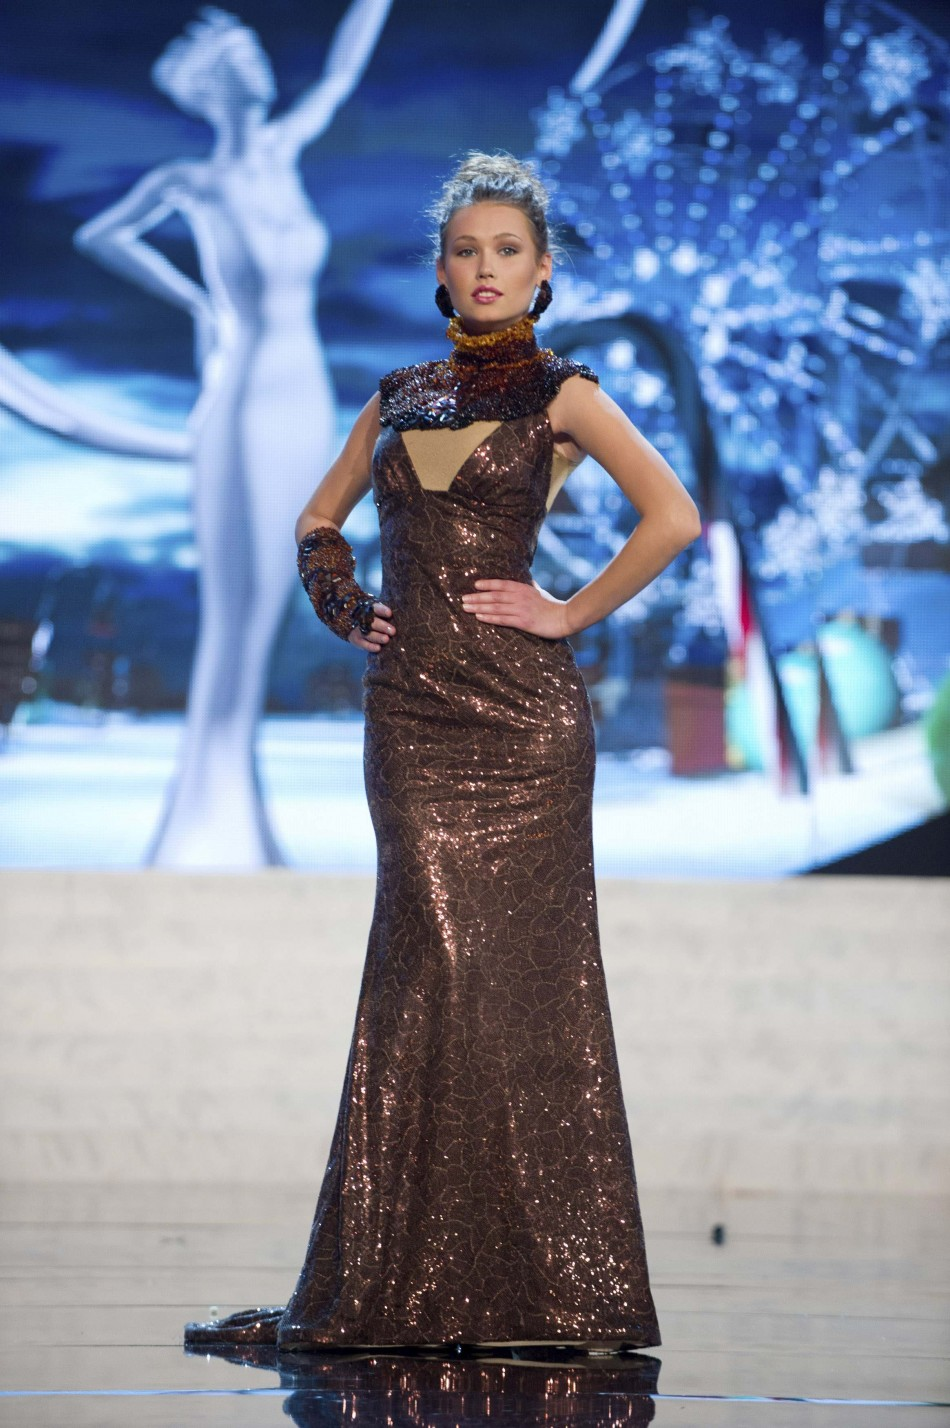 Miss Lithuania Greta Mikalauskyte on stage at the 2012 Miss Universe National Costume Show at PH Live in Las Vegas